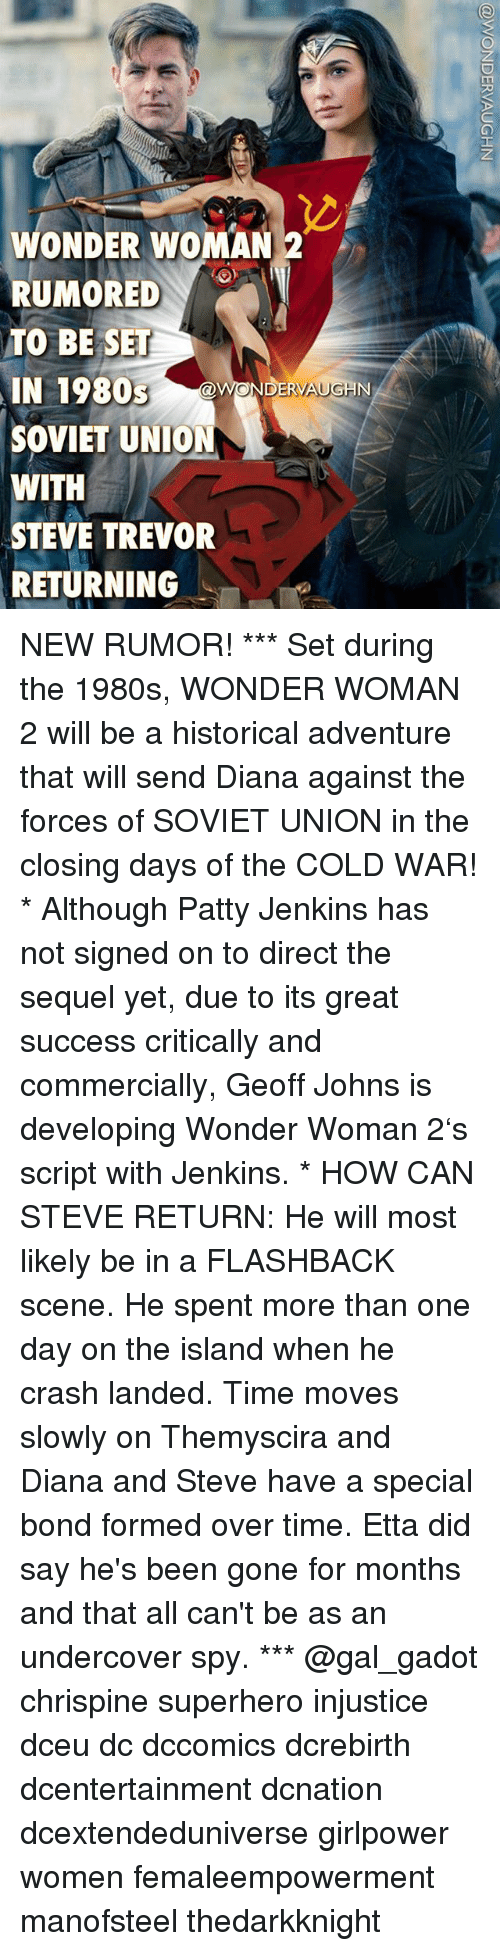 Memes, Superhero, and Time: WONDER WOMAN 2  RUMORED .)  TO BE SET  IN 1980S  SOVIET UNION  WITH  STEVE TREVOR  RETURNING  WONDERVAUGH  NN NEW RUMOR! *** Set during the 1980s, WONDER WOMAN 2 will be a historical adventure that will send Diana against the forces of SOVIET UNION in the closing days of the COLD WAR! * Although Patty Jenkins has not signed on to direct the sequel yet, due to its great success critically and commercially, Geoff Johns is developing Wonder Woman 2's script with Jenkins. * HOW CAN STEVE RETURN: He will most likely be in a FLASHBACK scene. He spent more than one day on the island when he crash landed. Time moves slowly on Themyscira and Diana and Steve have a special bond formed over time. Etta did say he's been gone for months and that all can't be as an undercover spy. *** @gal_gadot chrispine superhero injustice dceu dc dccomics dcrebirth dcentertainment dcnation dcextendeduniverse girlpower women femaleempowerment manofsteel thedarkknight